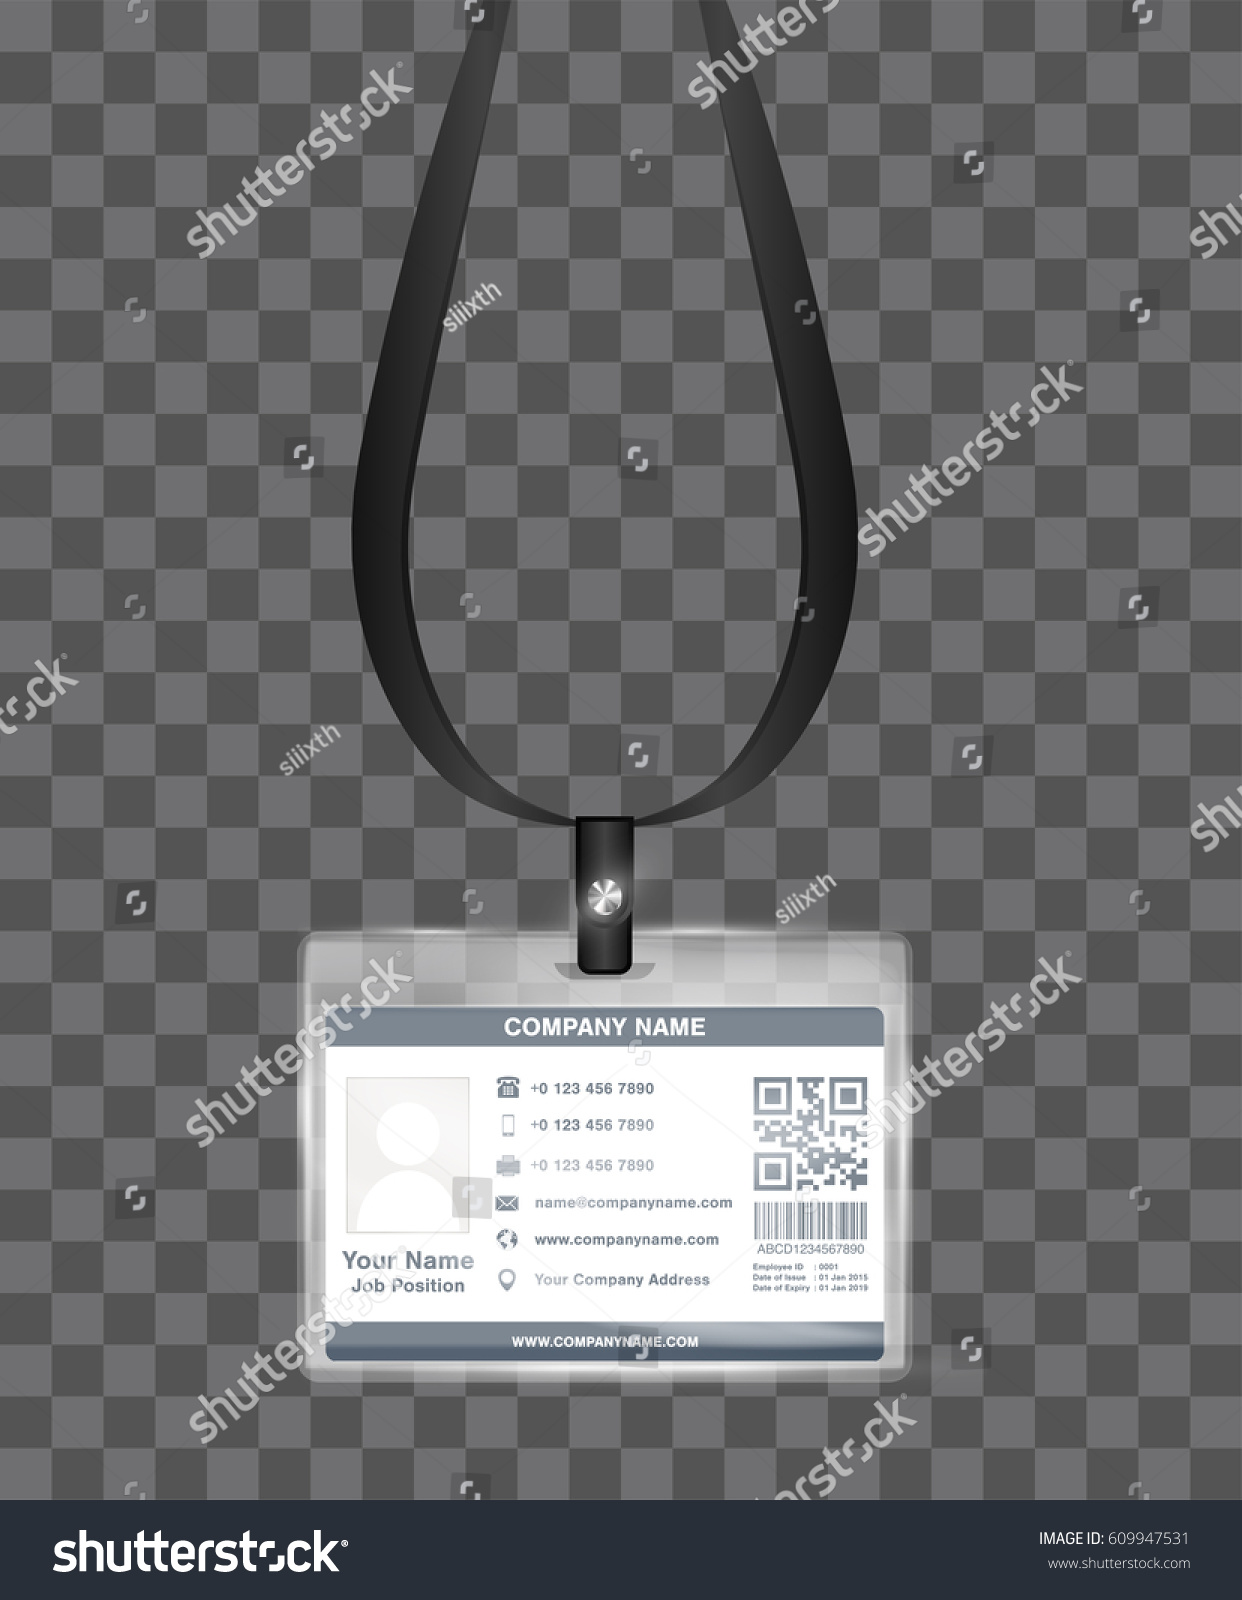 Simple Landscape Employee Id Card Template Stock Vector 609947531 ...